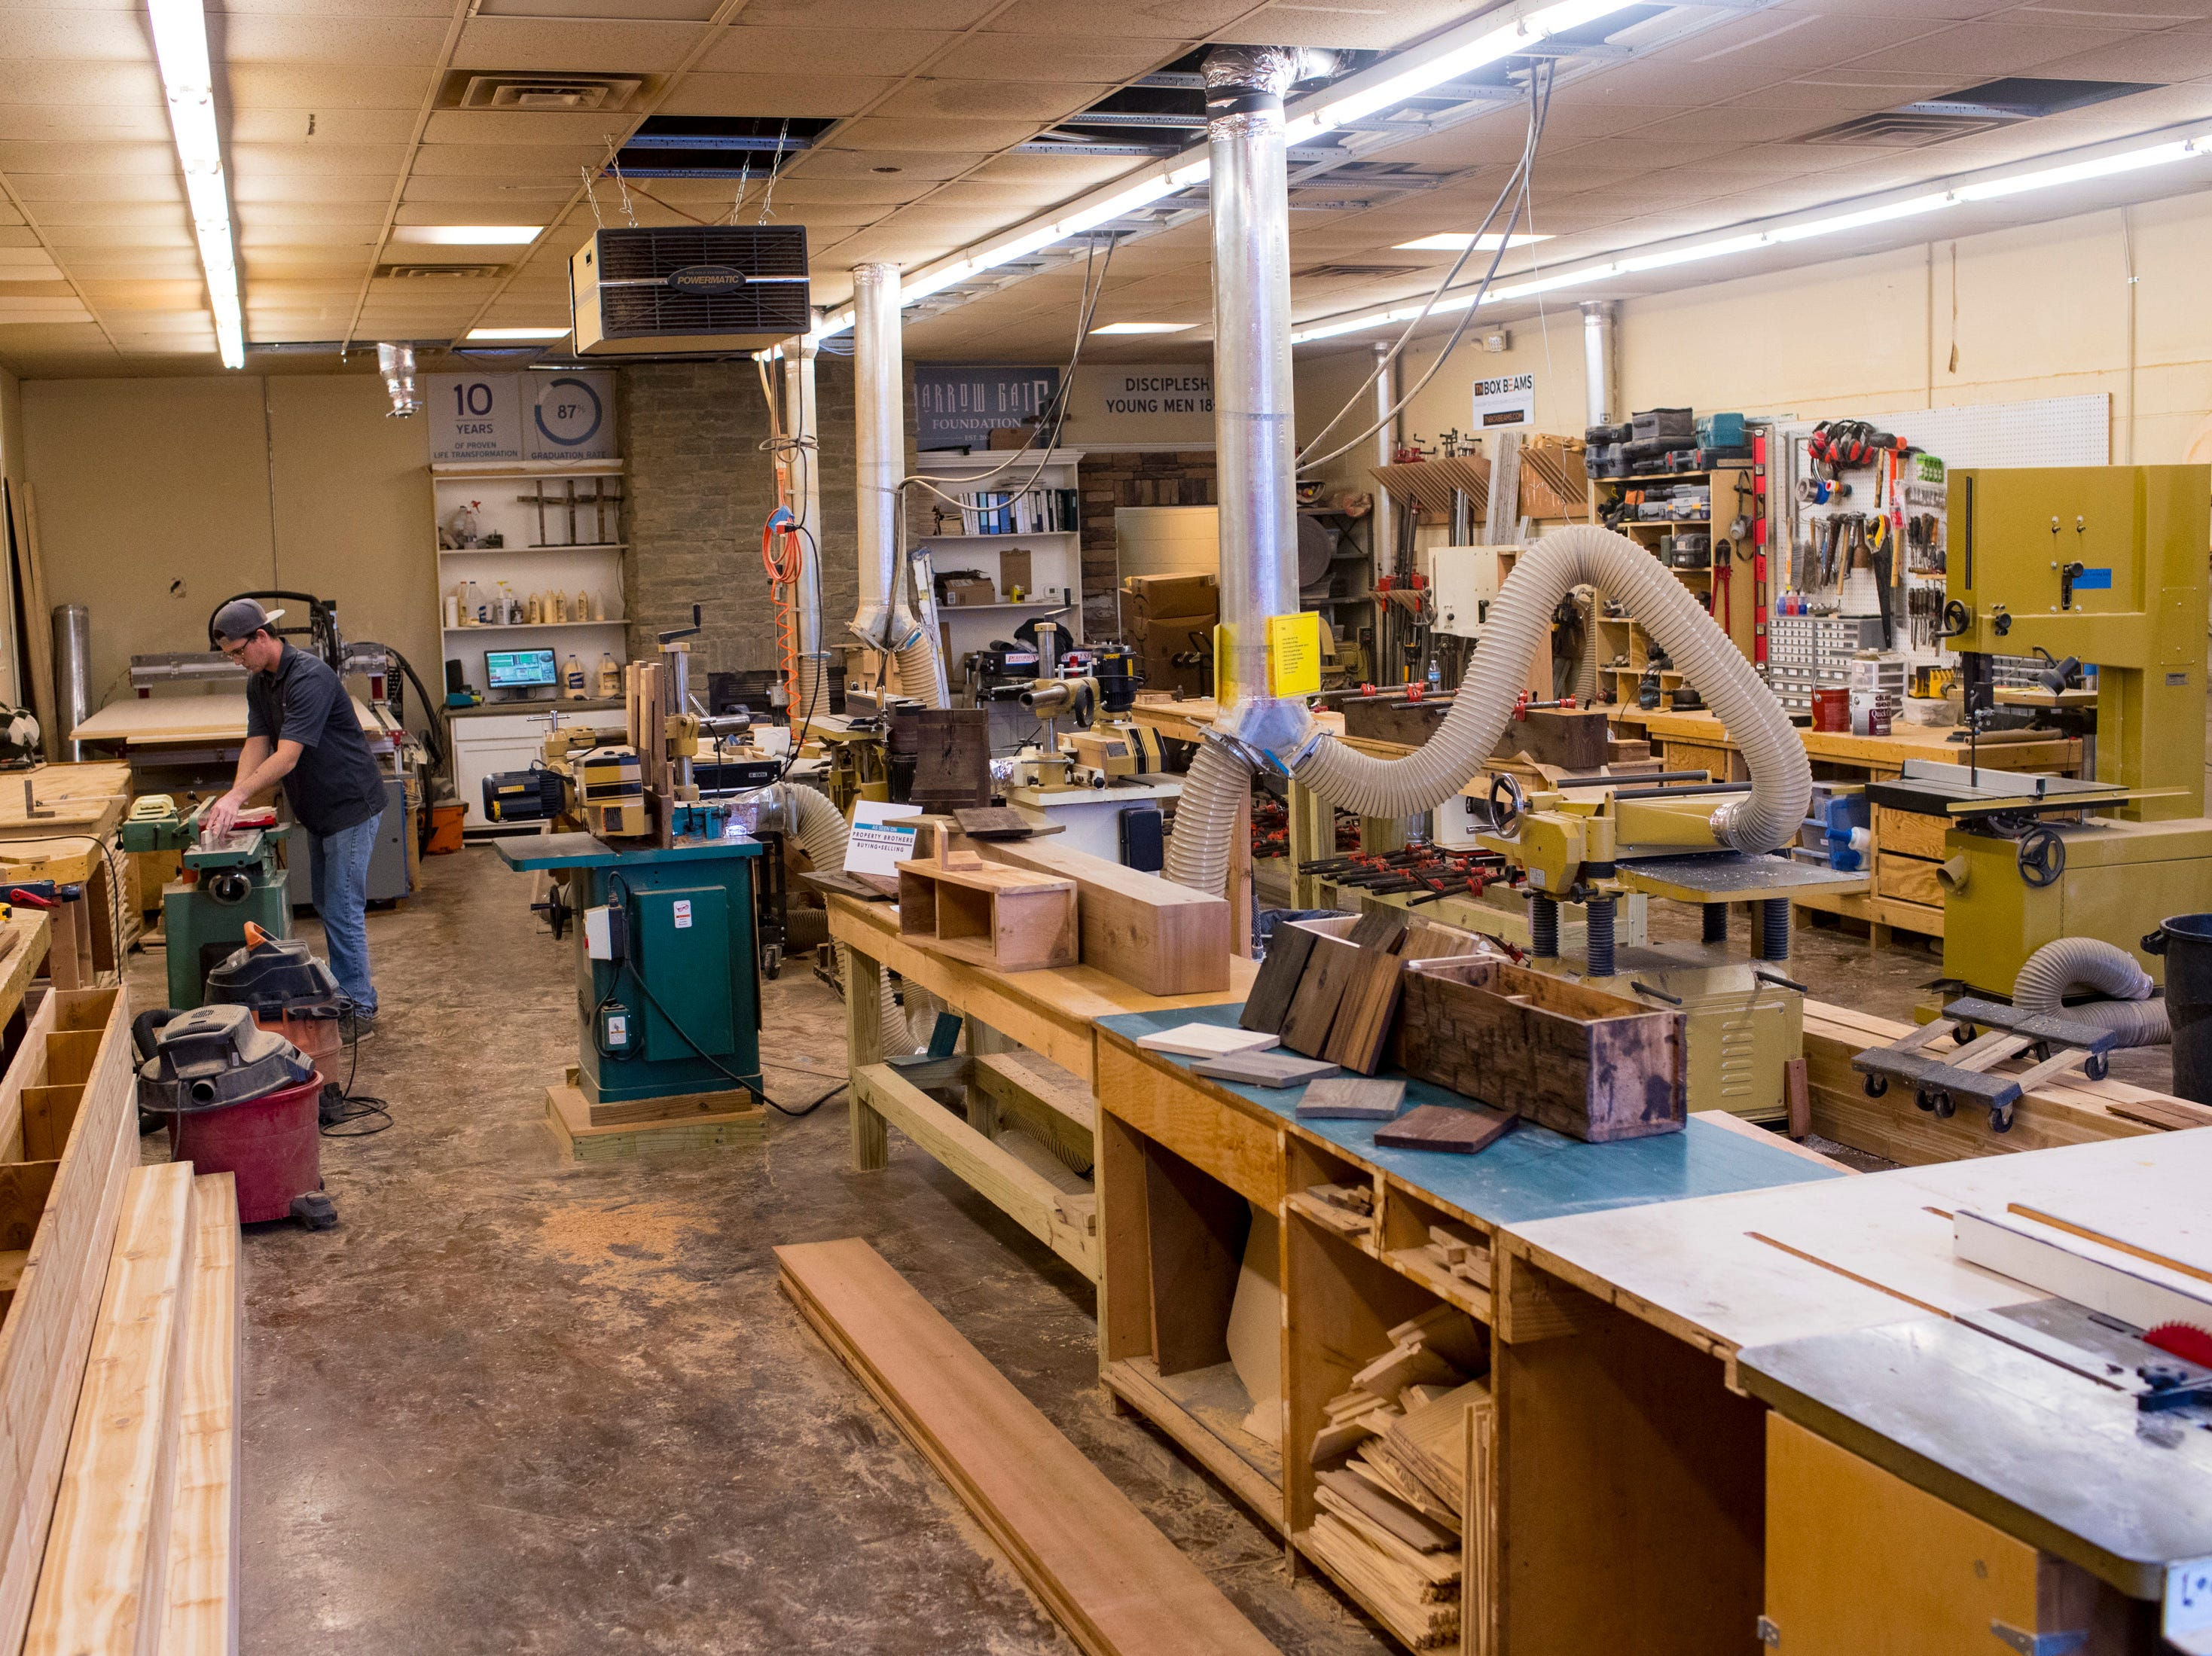 The woodworking shop at TN Box Beam in Franklin on Friday, Nov. 9, 2018. TN Box Beam will be featured on the HGTV show Property Brothers Buying + Selling on Nov. 14.